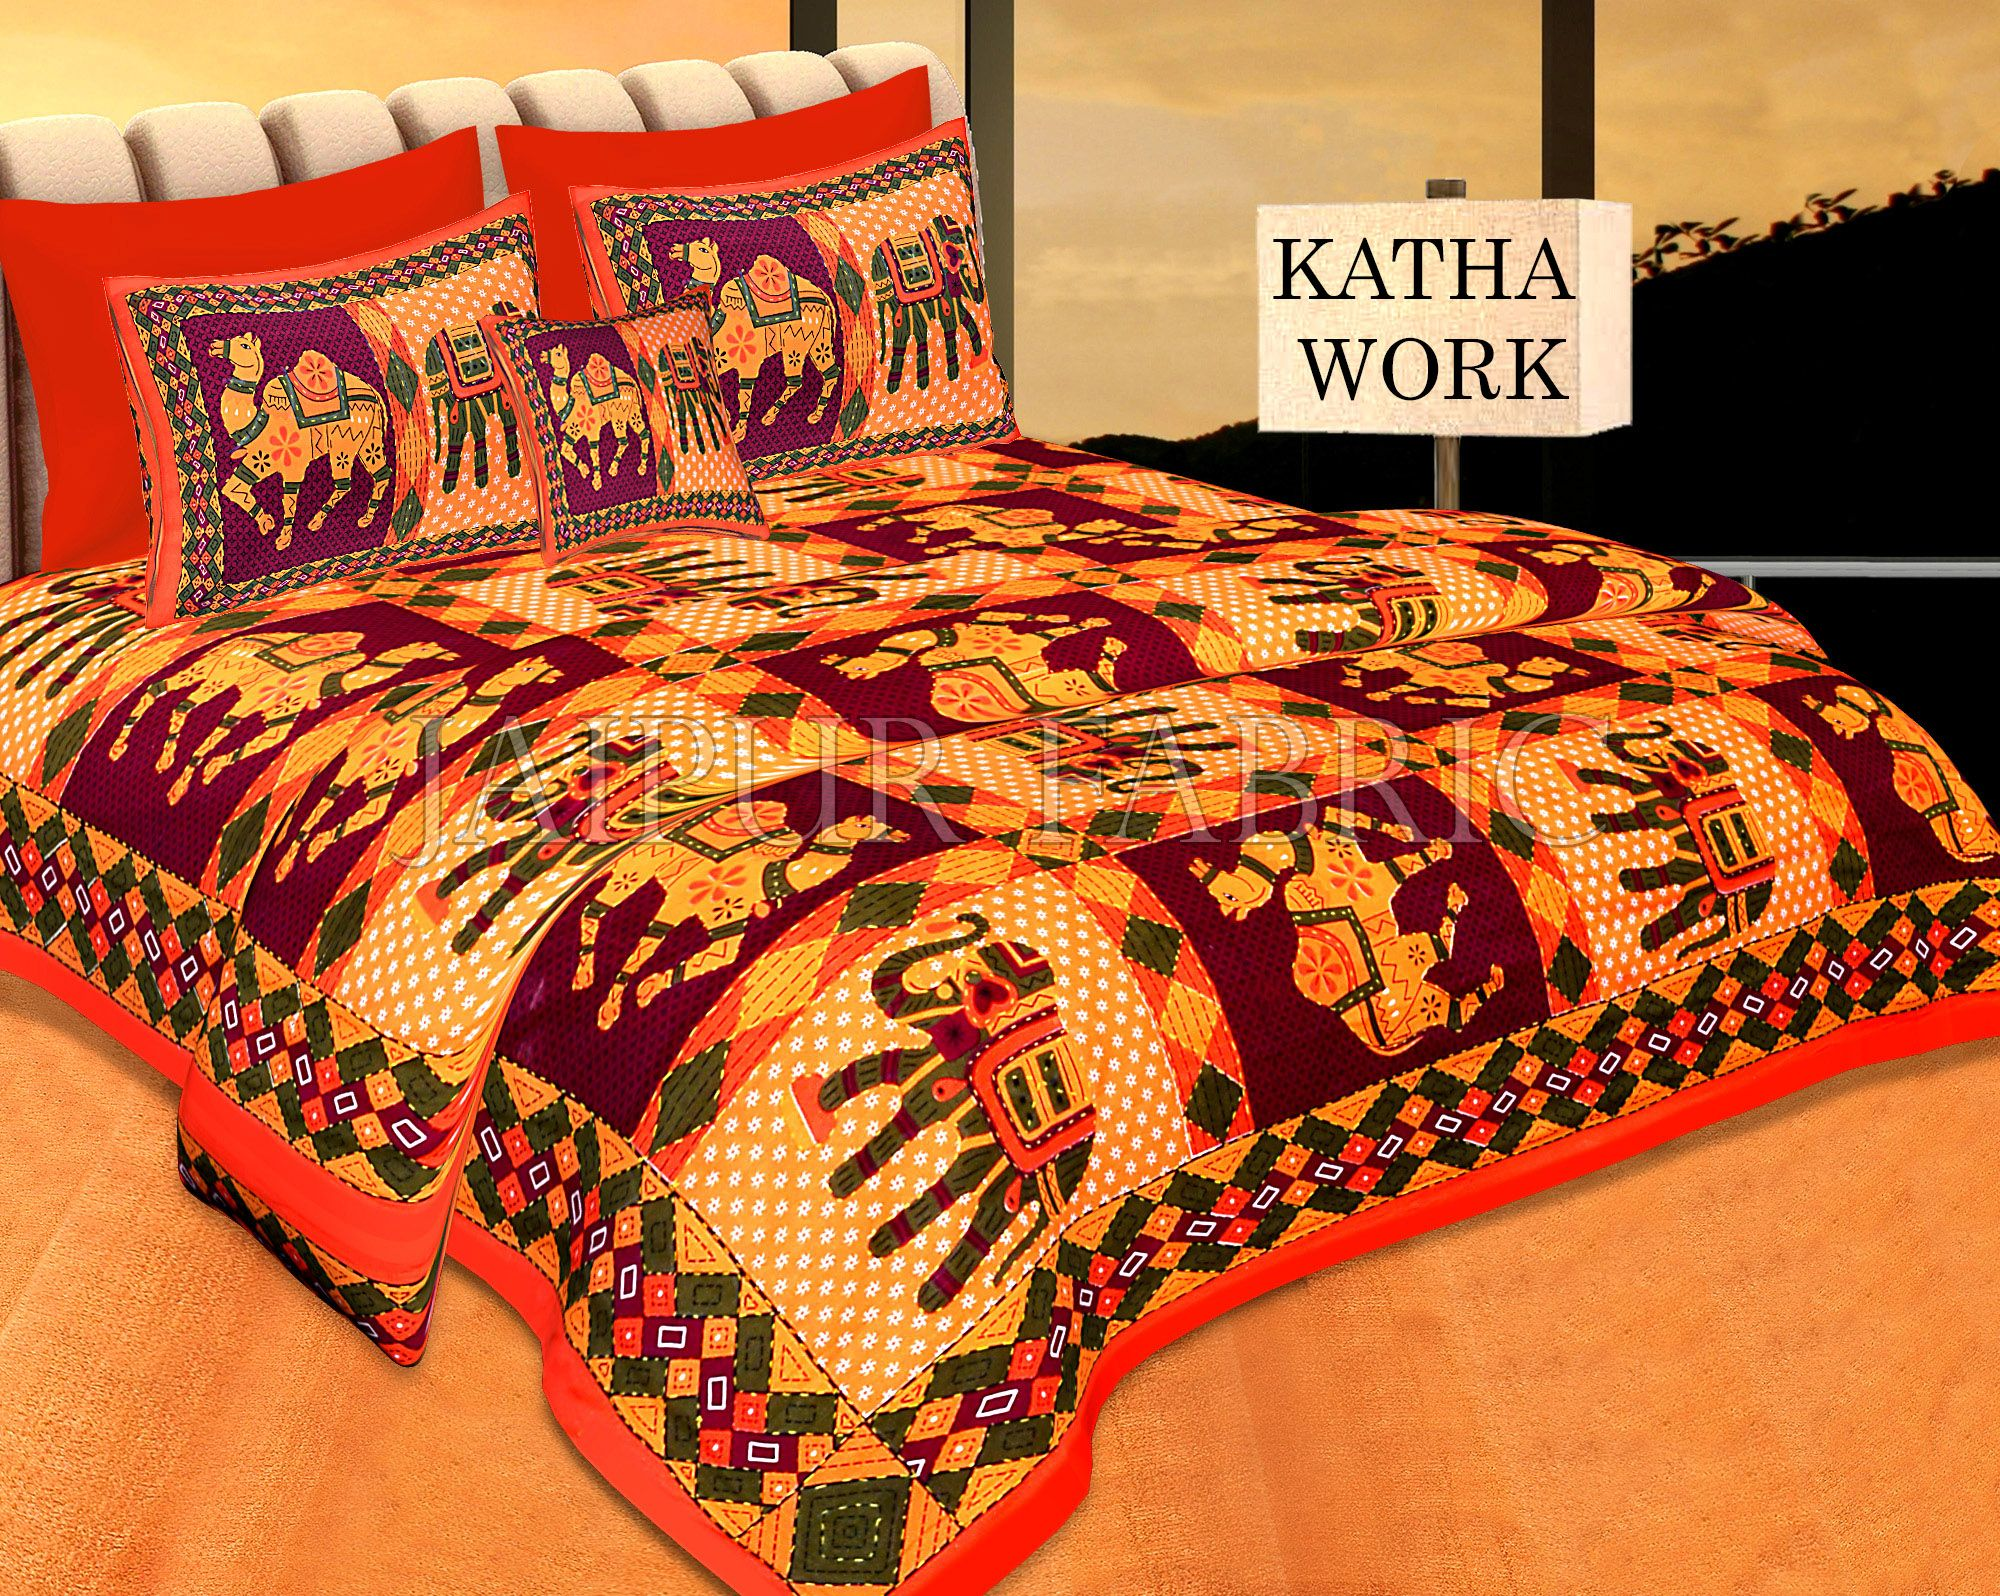 Orange Jaisalmer Handmade Embroidery with katha Thread Work Elephant Print Double Bed Sheet with Two Pillow Covers